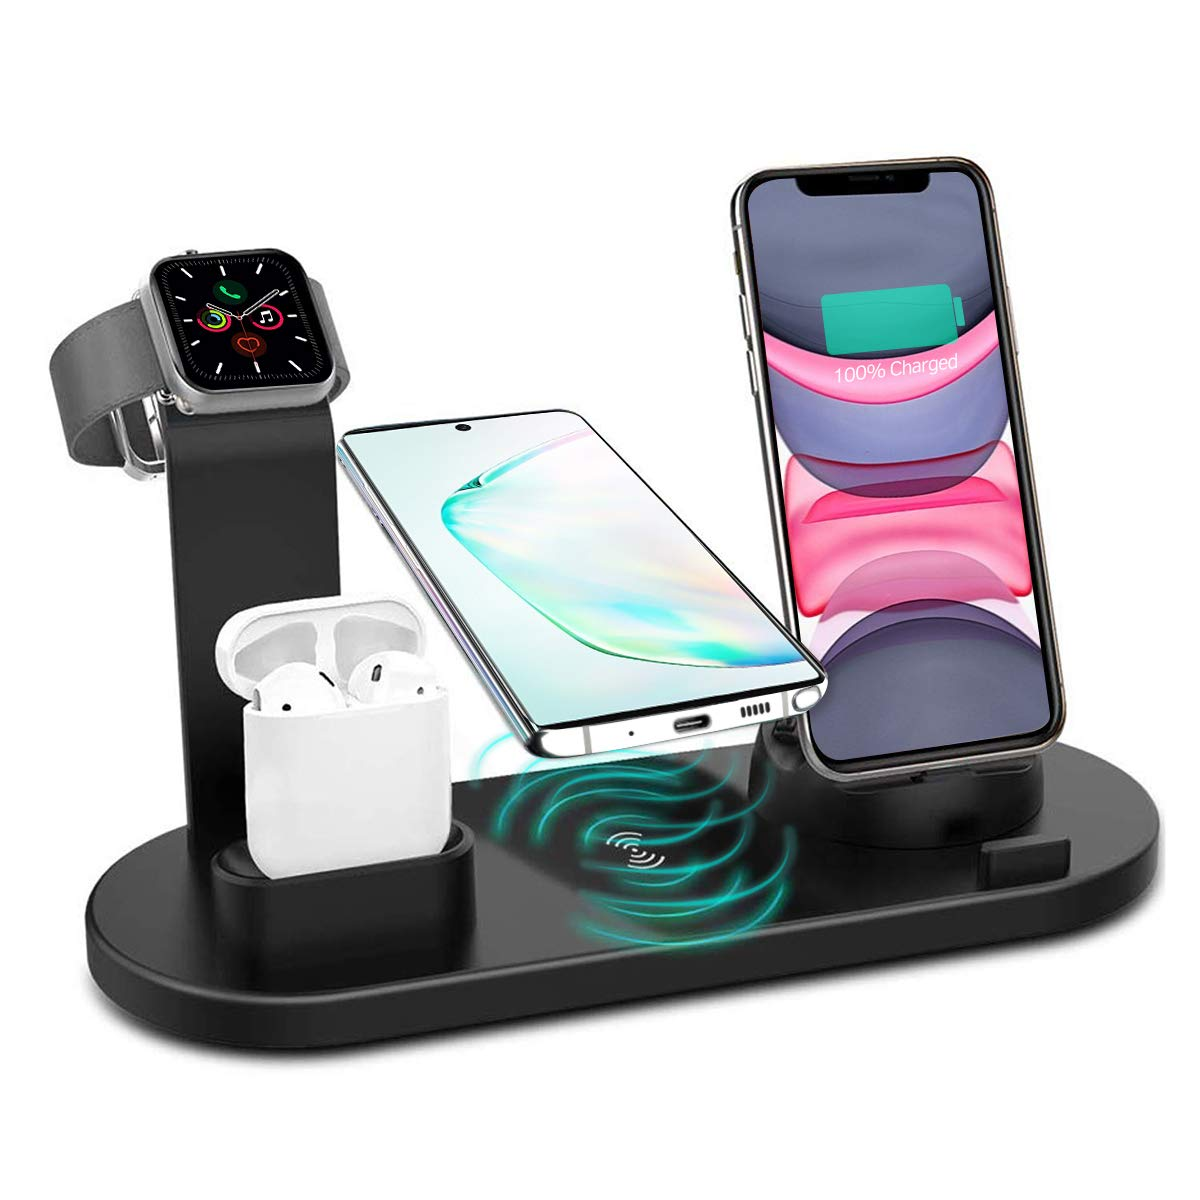 Wireless Charger, 4 in 1 Wireless Charging Station, Charging Dock for iPhone/AirPods, Qi-Certified Fast Wireless Charging Stand iPhone 11/11Pro/11Pro Max/X/XS/XR/Max / 8/8 Plus Samsung(Black) by KITPIPI